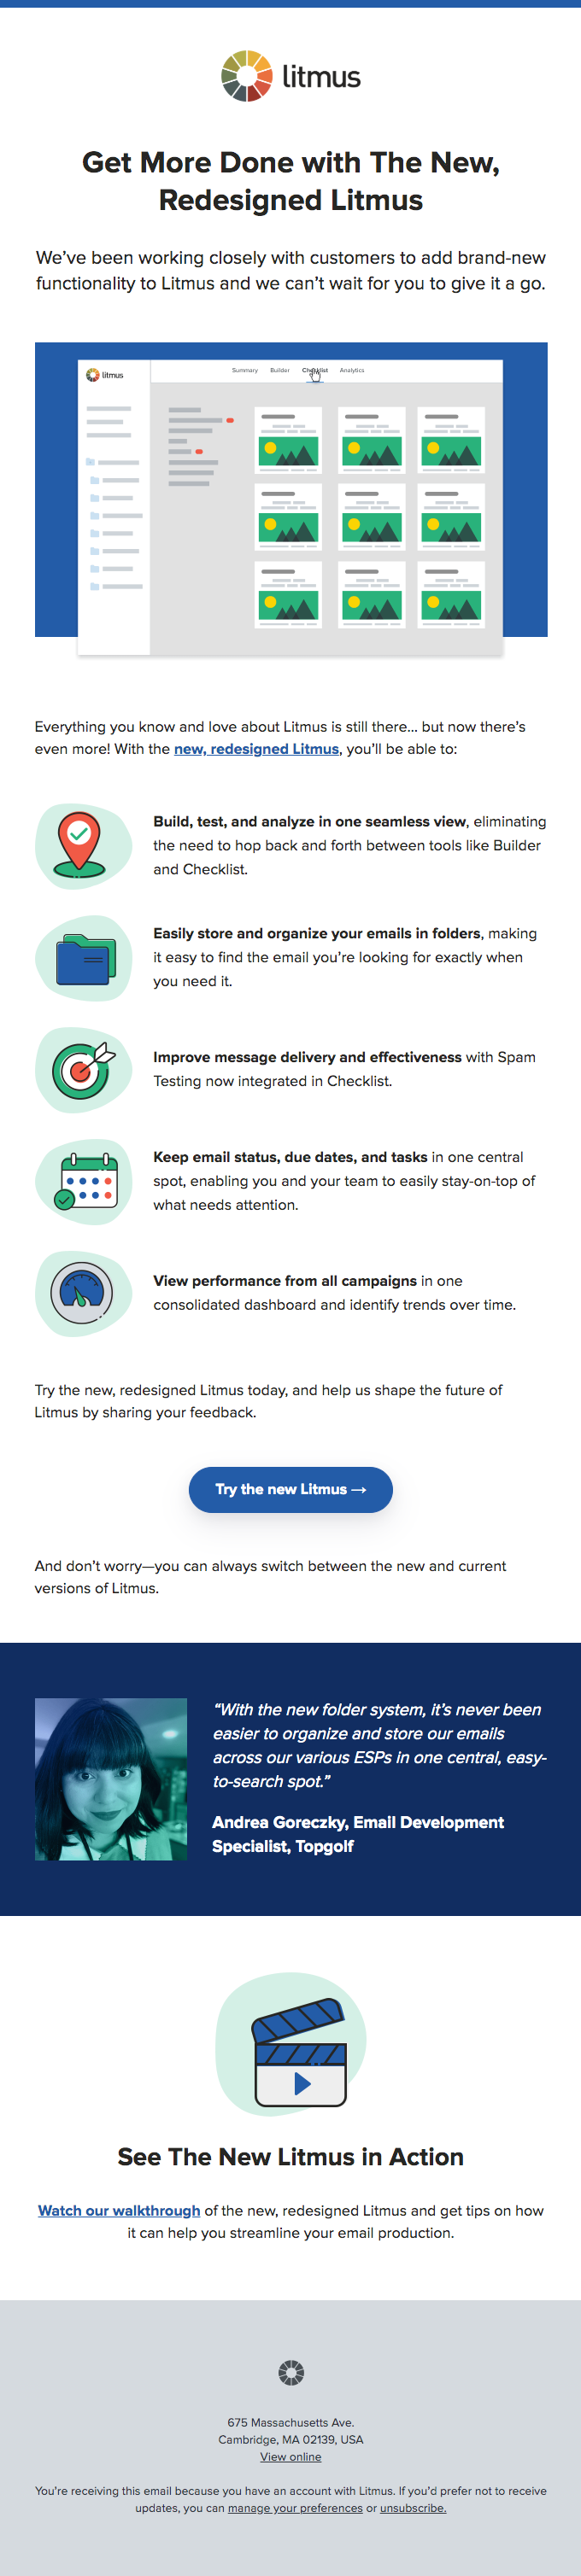 litmus new feature product update example from really good emails